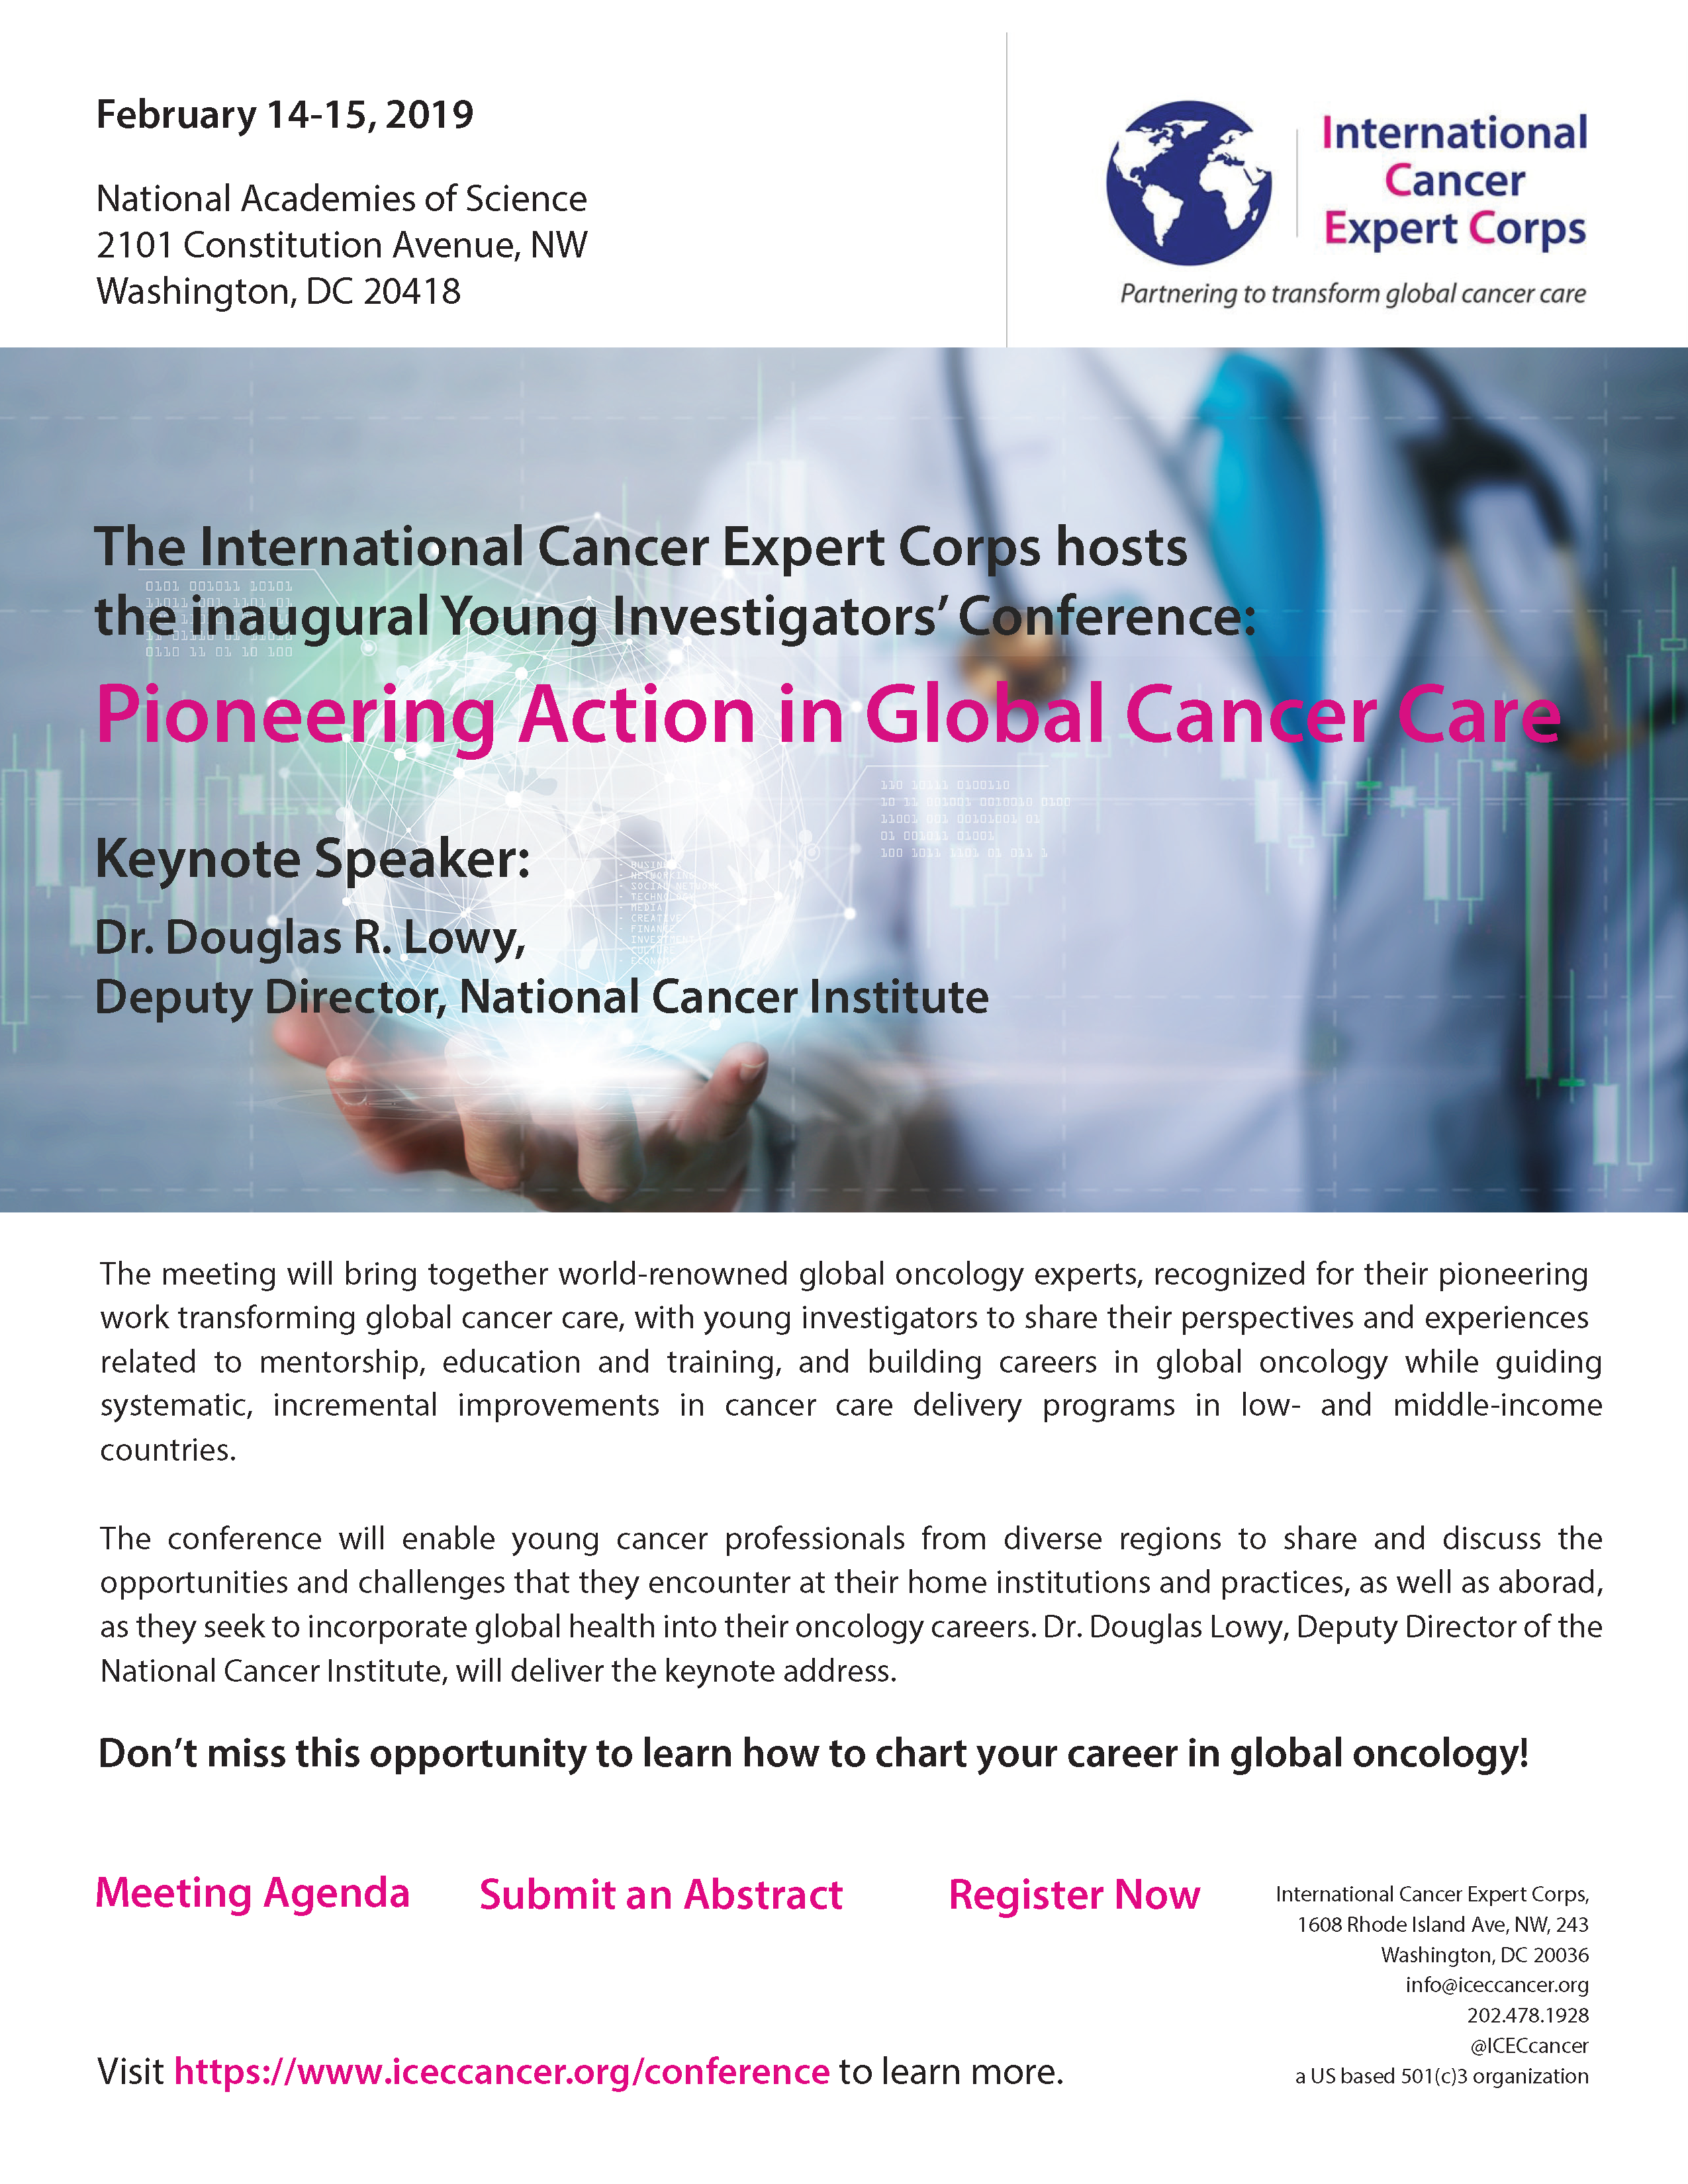 Pioneering Action in Global Cancer Care - Global Health Council